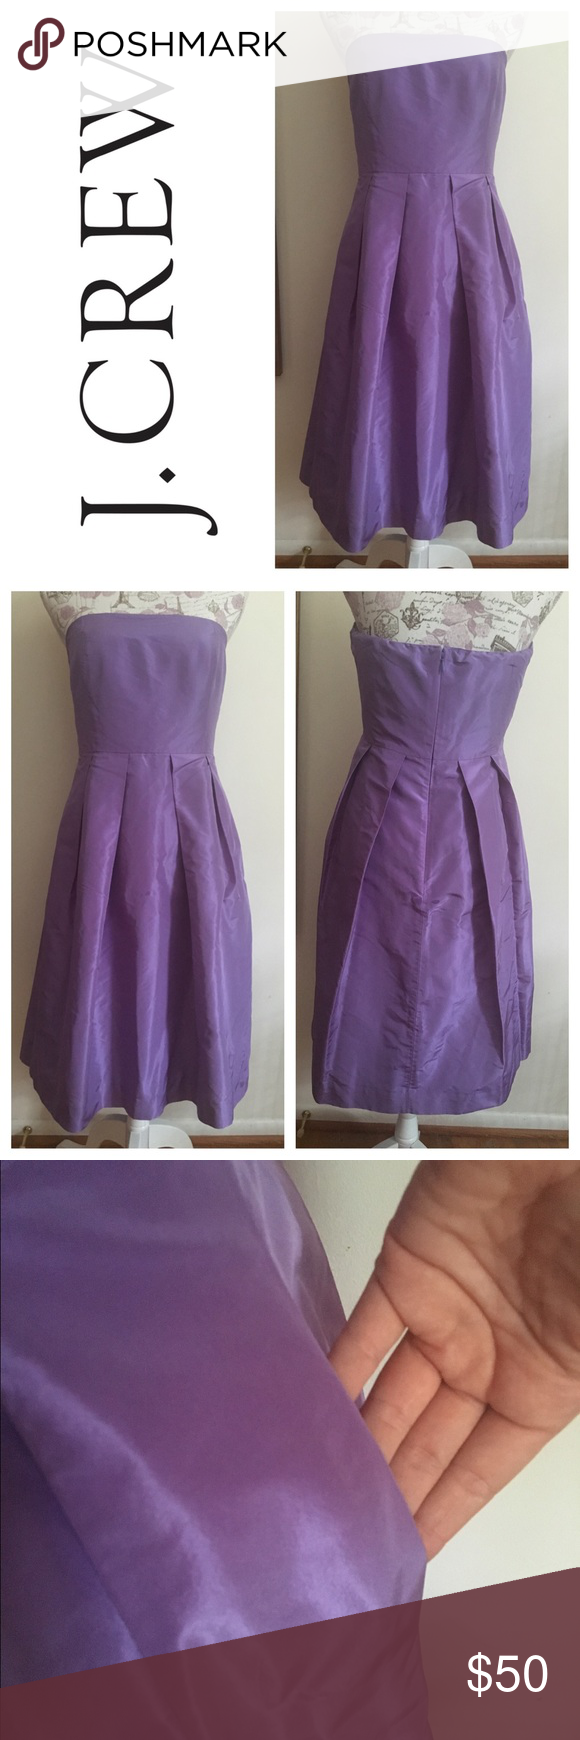 J crew purple semiformal dress i wore this for a wedding it would